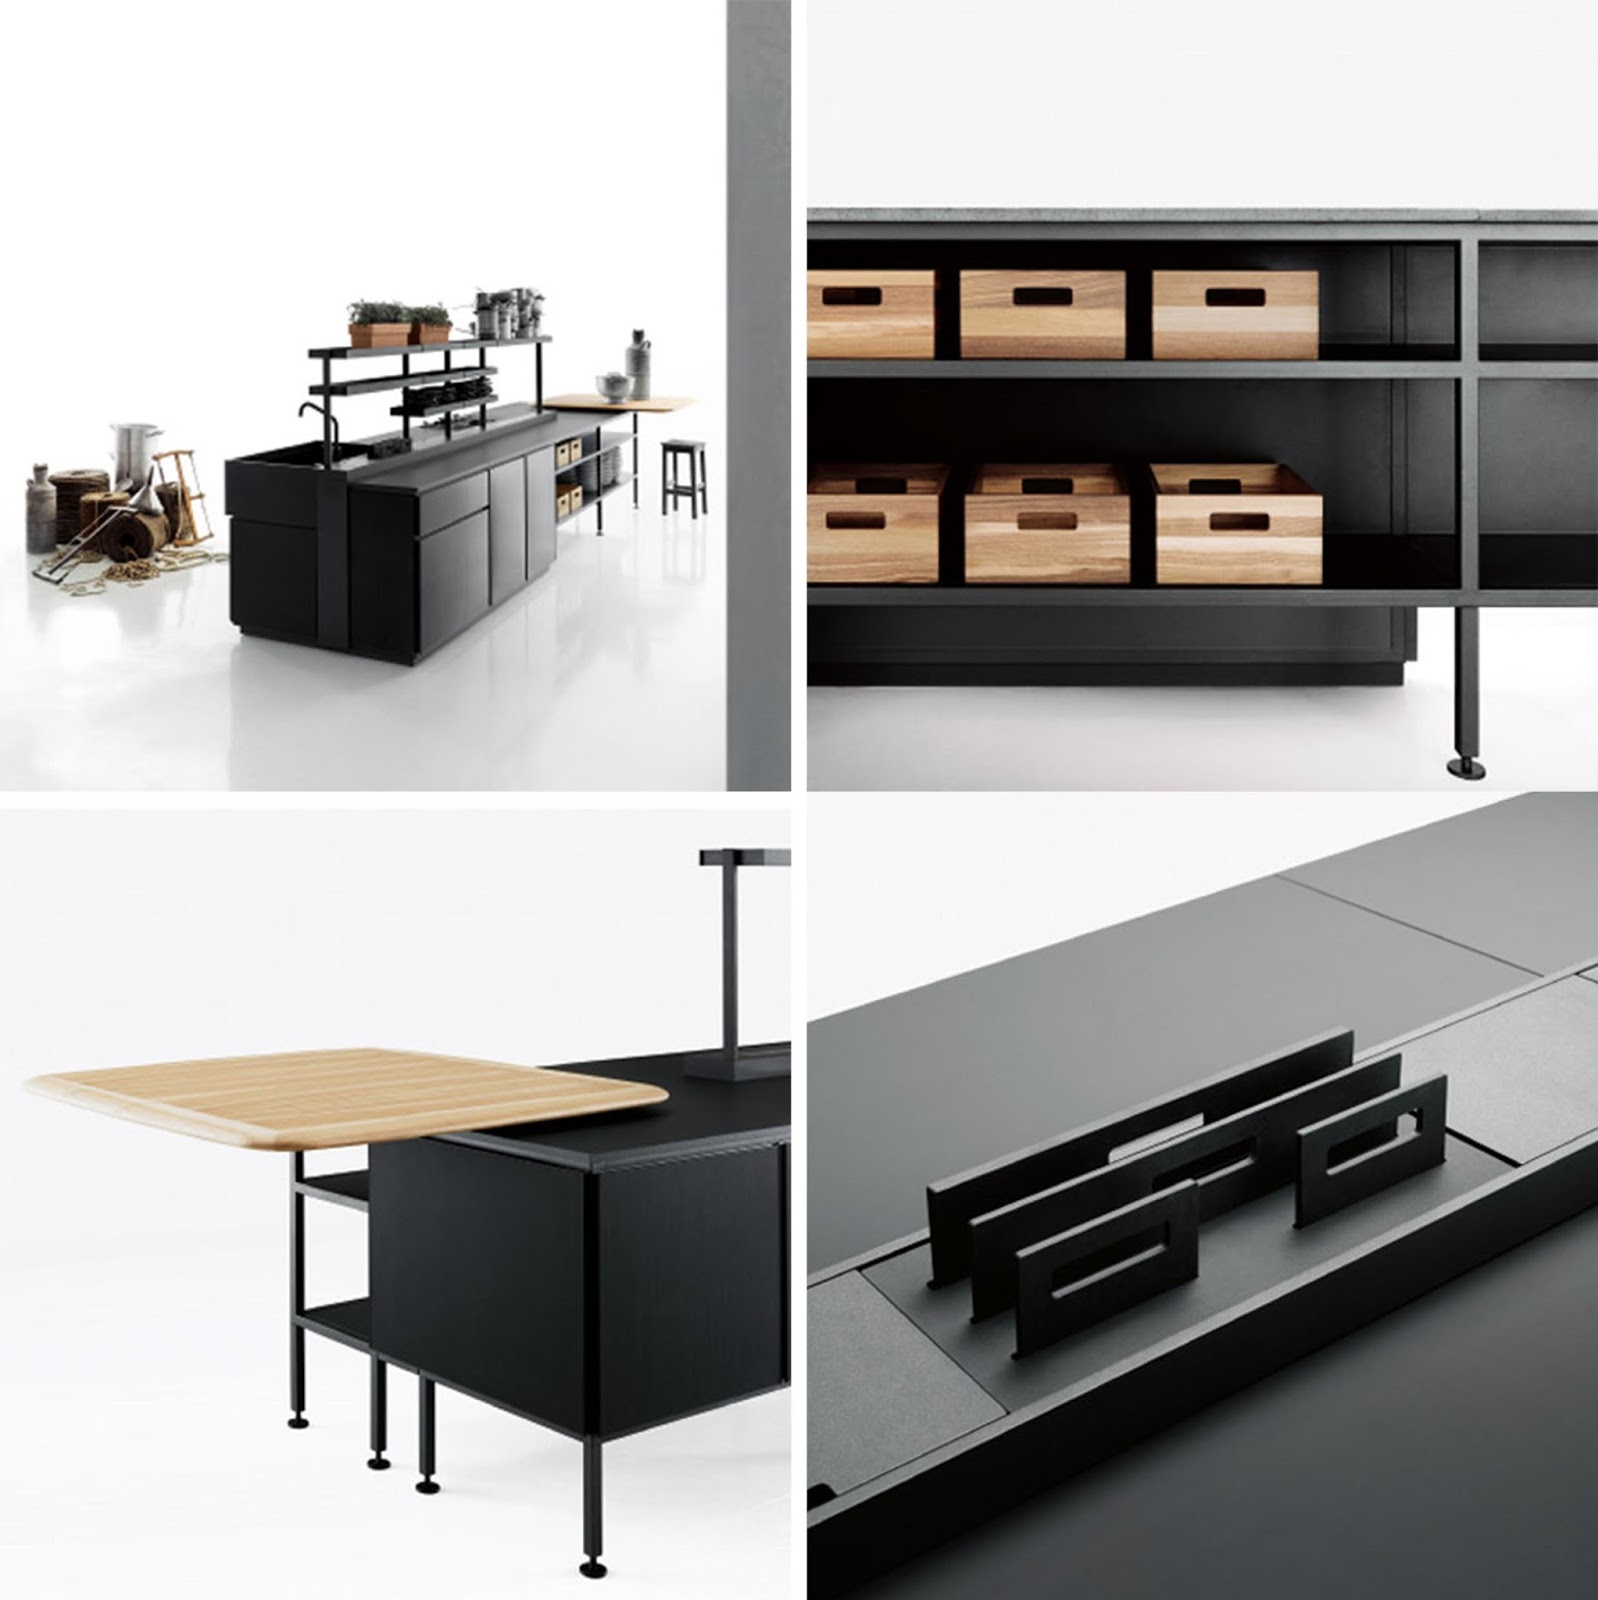 Offerte Cucine Boffi Photos - harrop.us - harrop.us